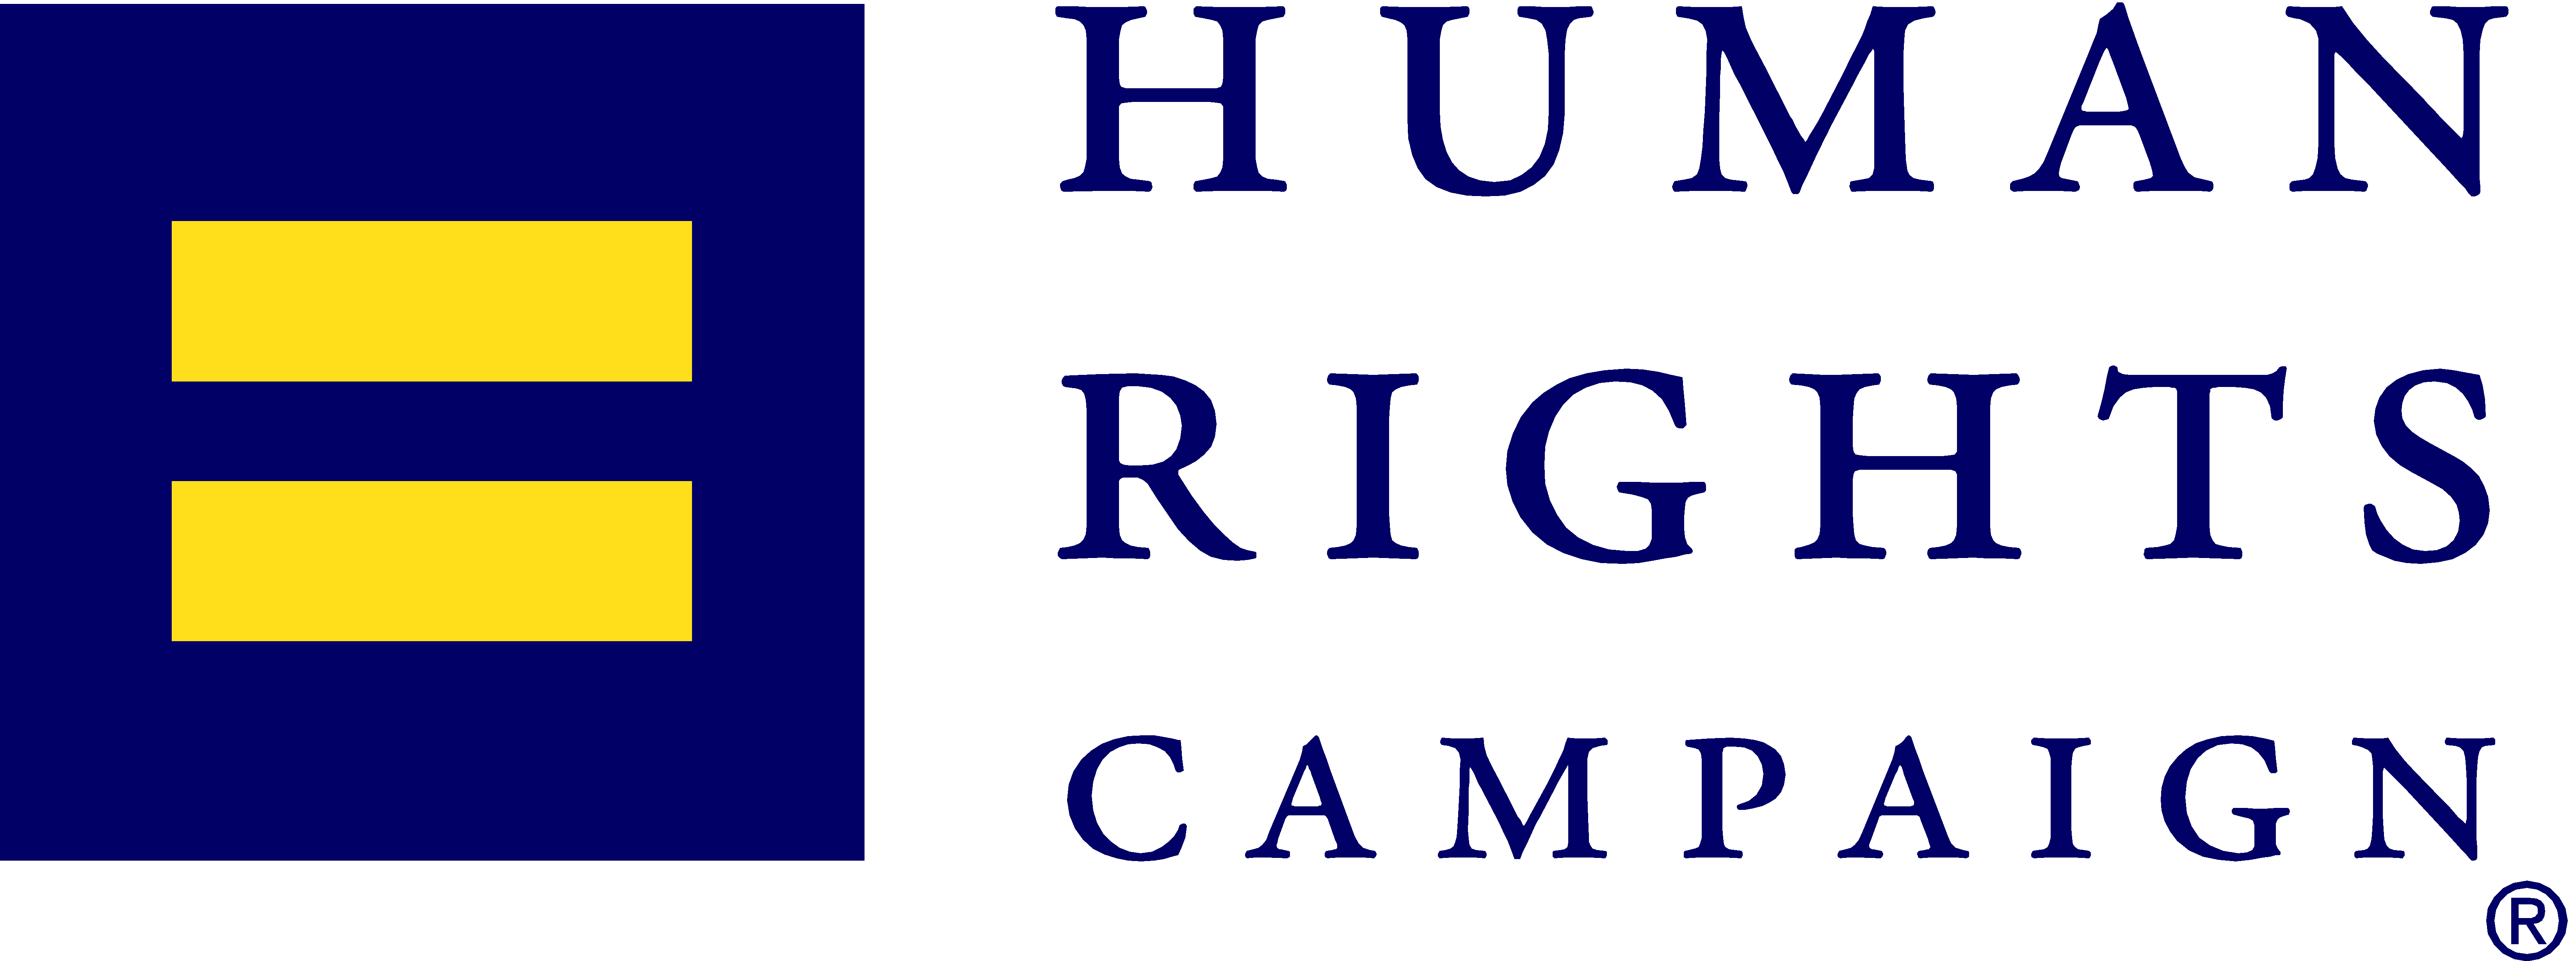 Human rights campaign png. Hrc supporter proudly stands